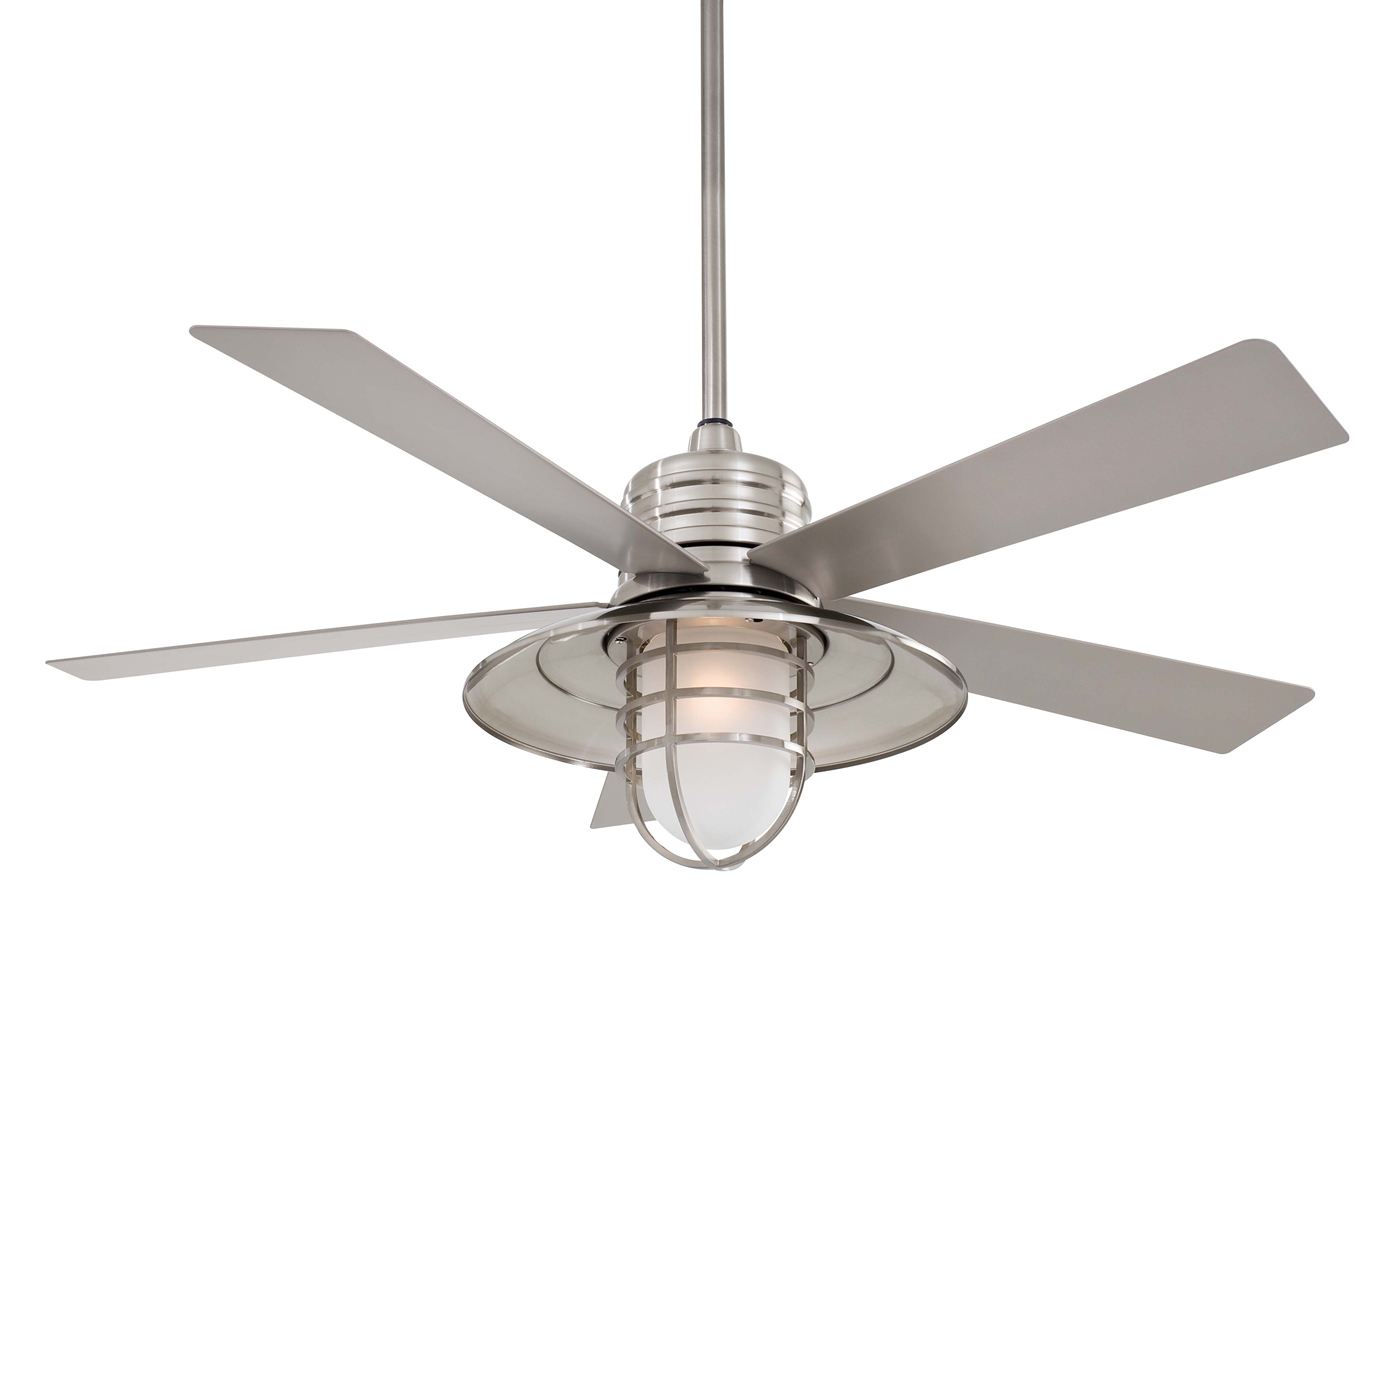 10 adventages of Small outdoor ceiling fans | Warisan Lighting